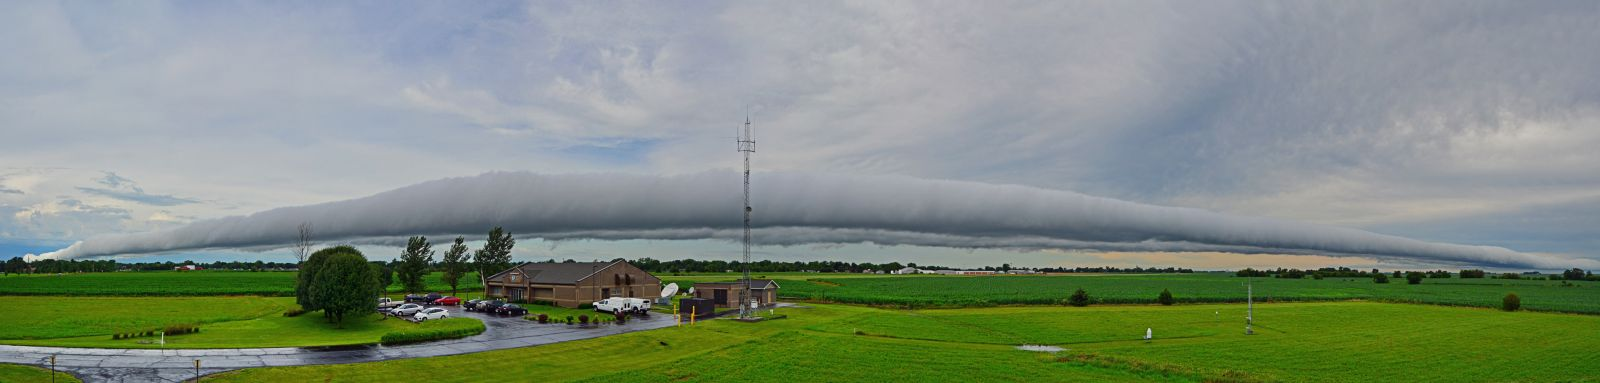 Roll cloud photo by Mark Stacey @ NWS Lincoln, IL  June 25, 2015